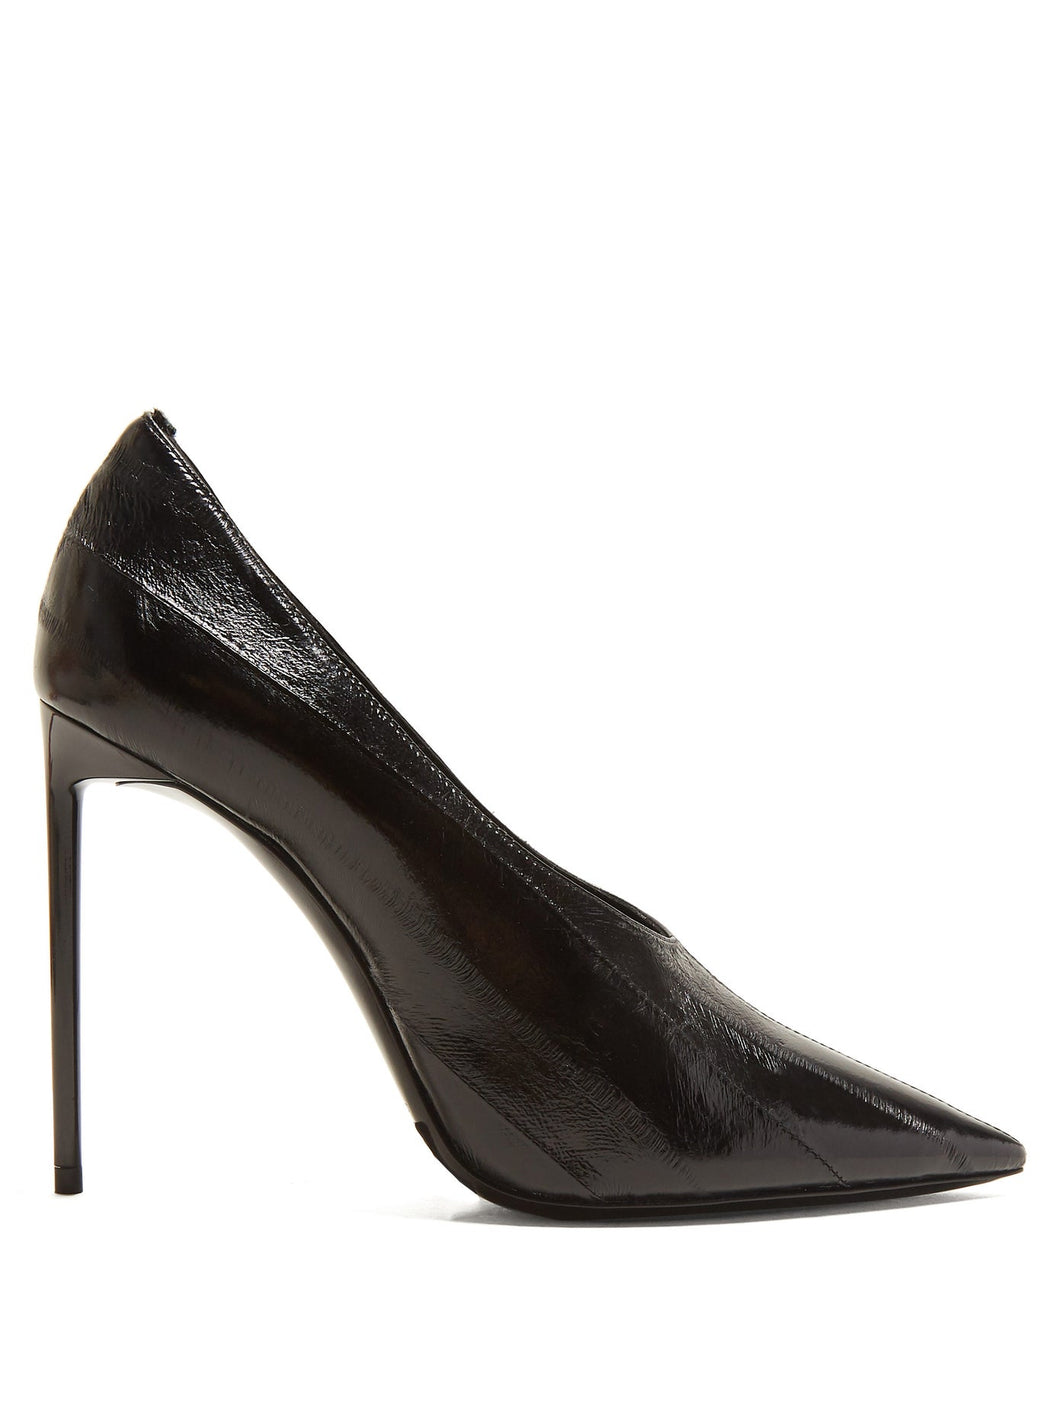 Teddy paneled leather pumps